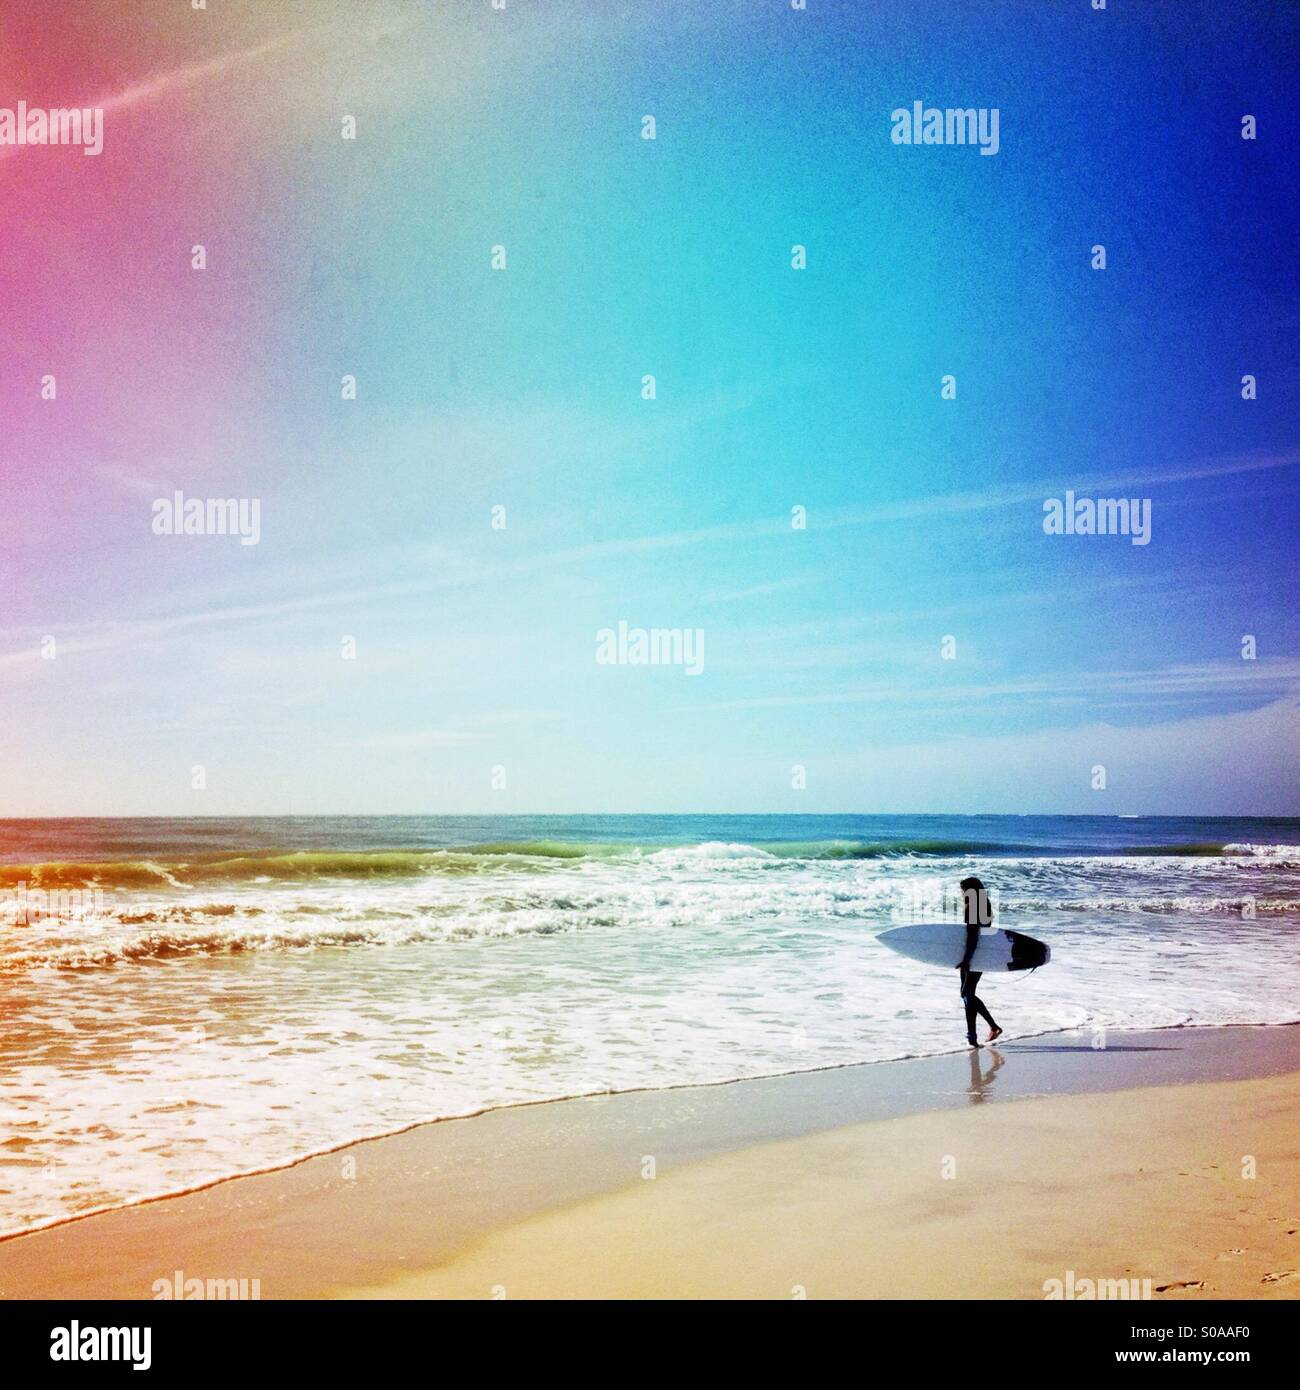 Surfer going into the ocean to surf. - Stock Image